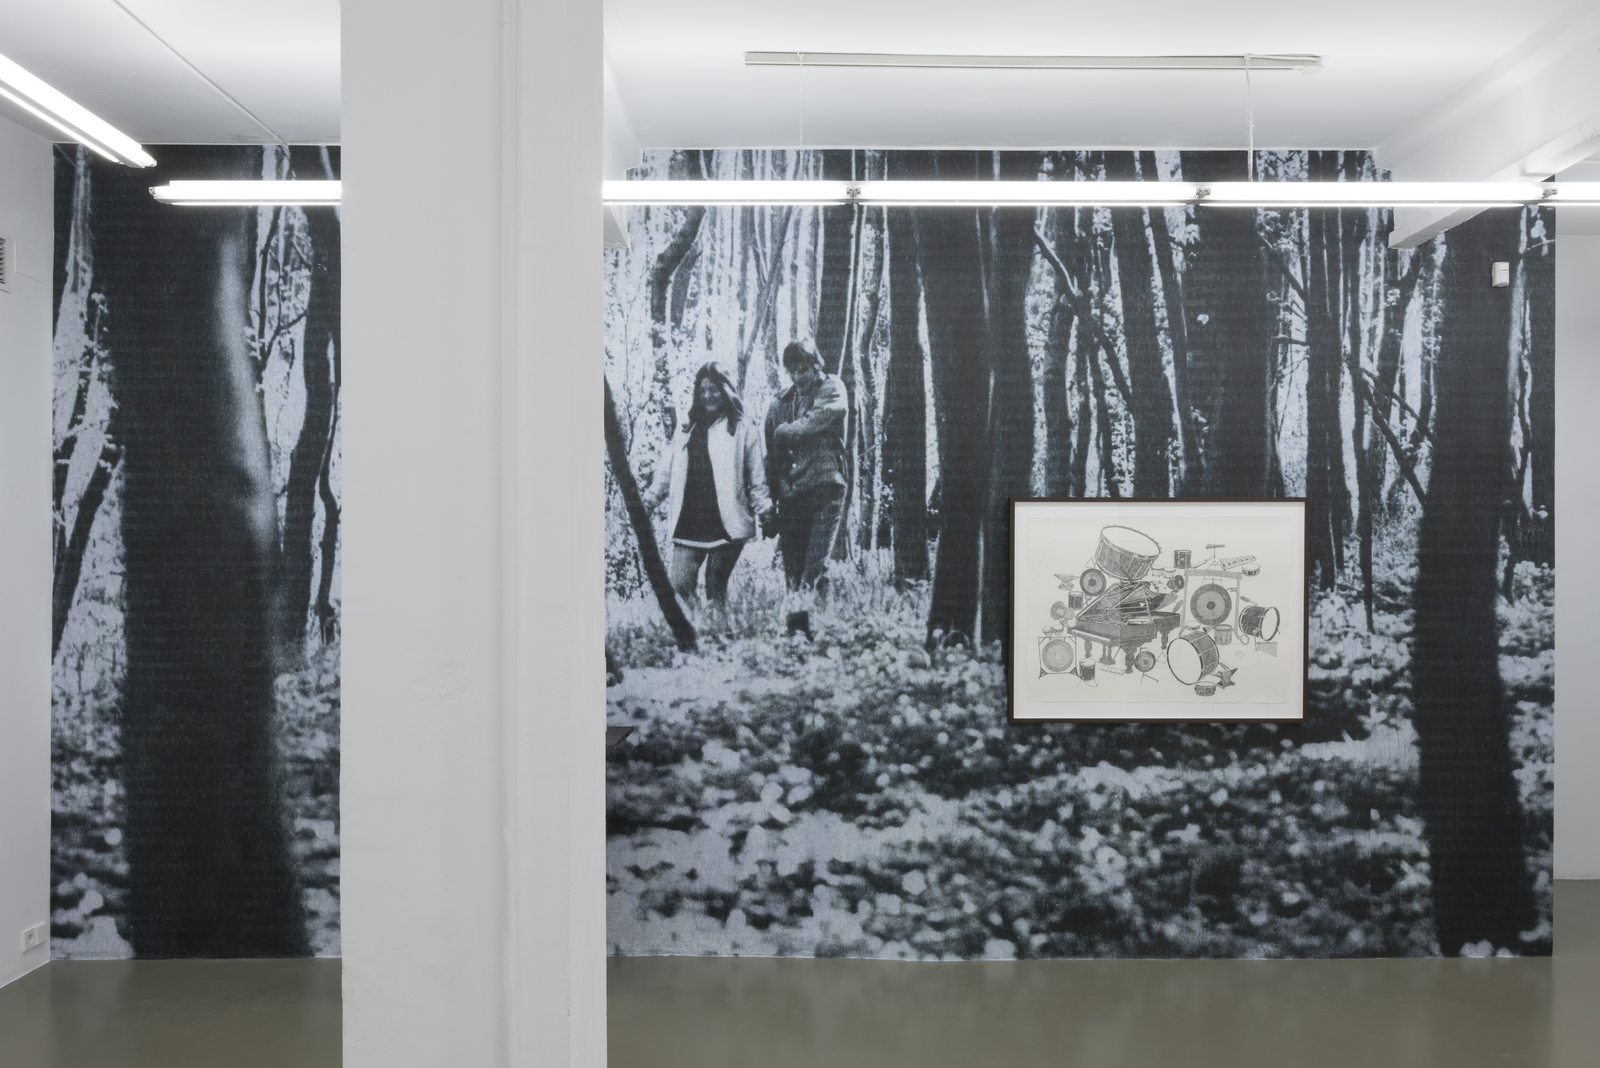 CS_Pareja alemana en un bosque_2016_print on the wall_variable dimensions_exhibition view 1